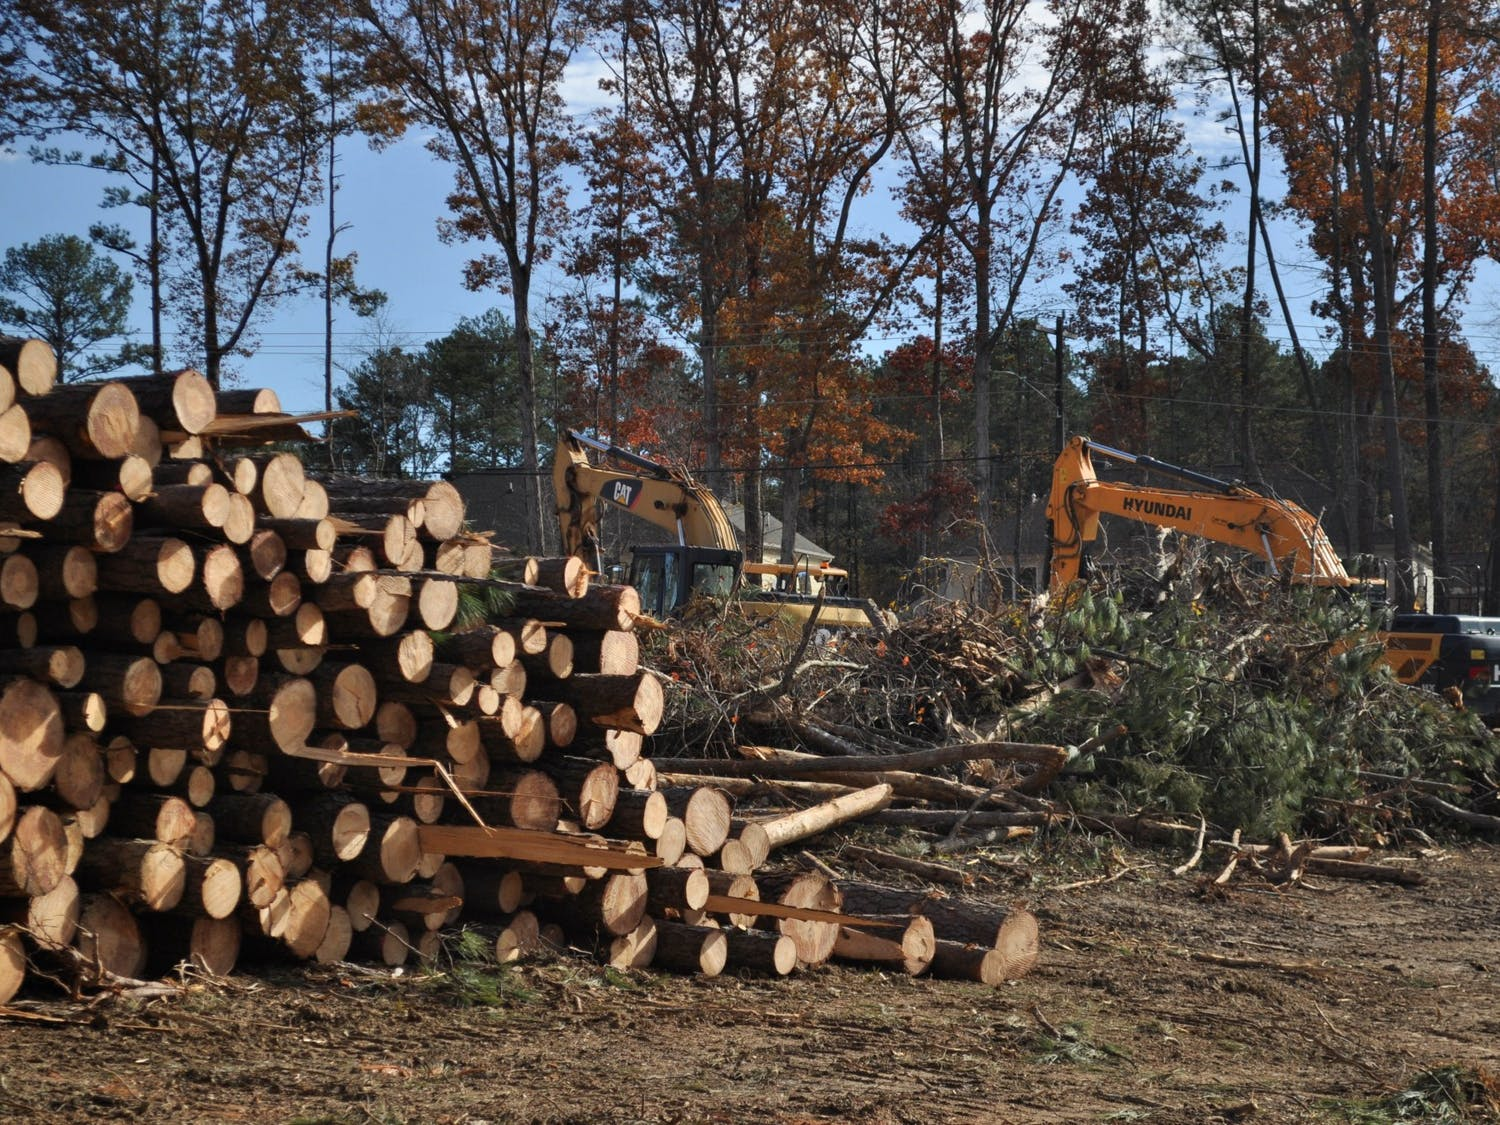 Construction is underway for a new residential development project located on Homestead Road on Sunday, Nov. 24, 2019. Plans of developing land near the intersection of Eubanks Road and Old NC 86 raised concerns from residents about how Duke Forest's research and natural sites would be affected.